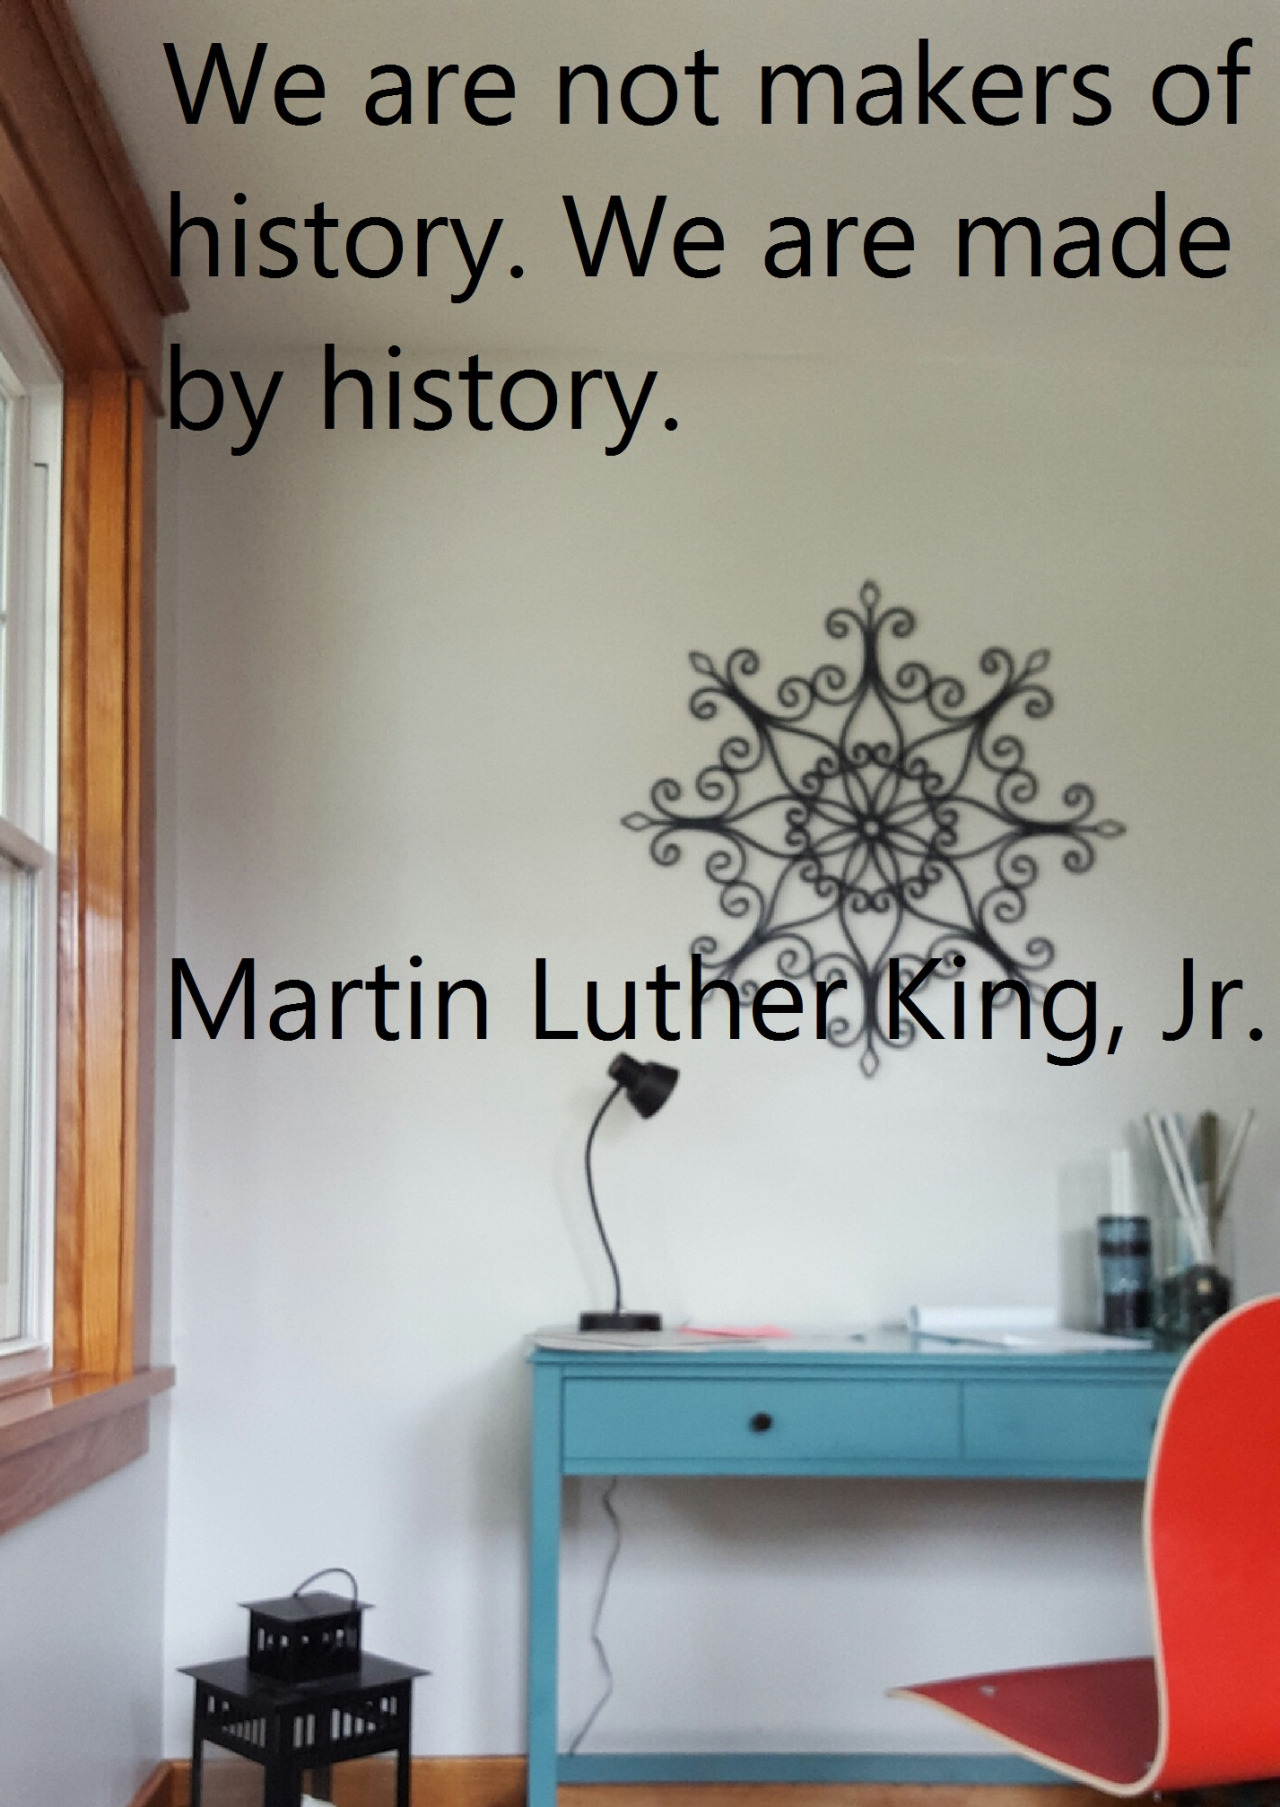 Creator quote We are not makers of history. We are made by history.